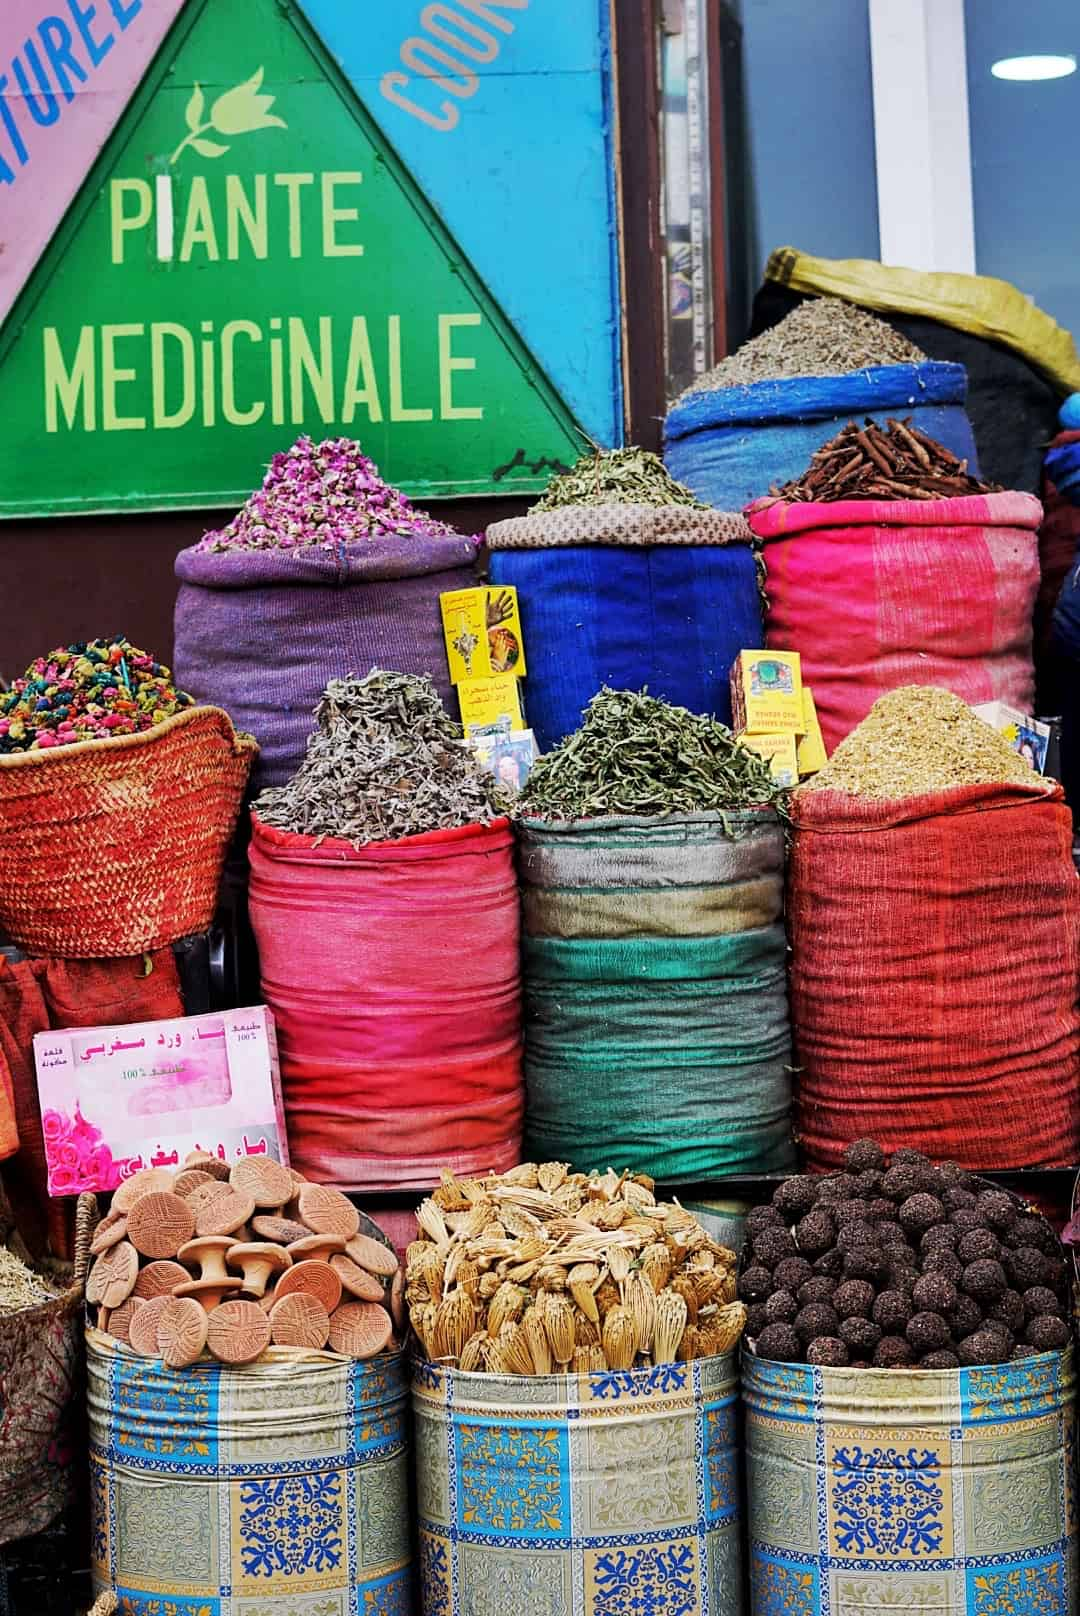 Morocco Plants and Herbs in Marrakech